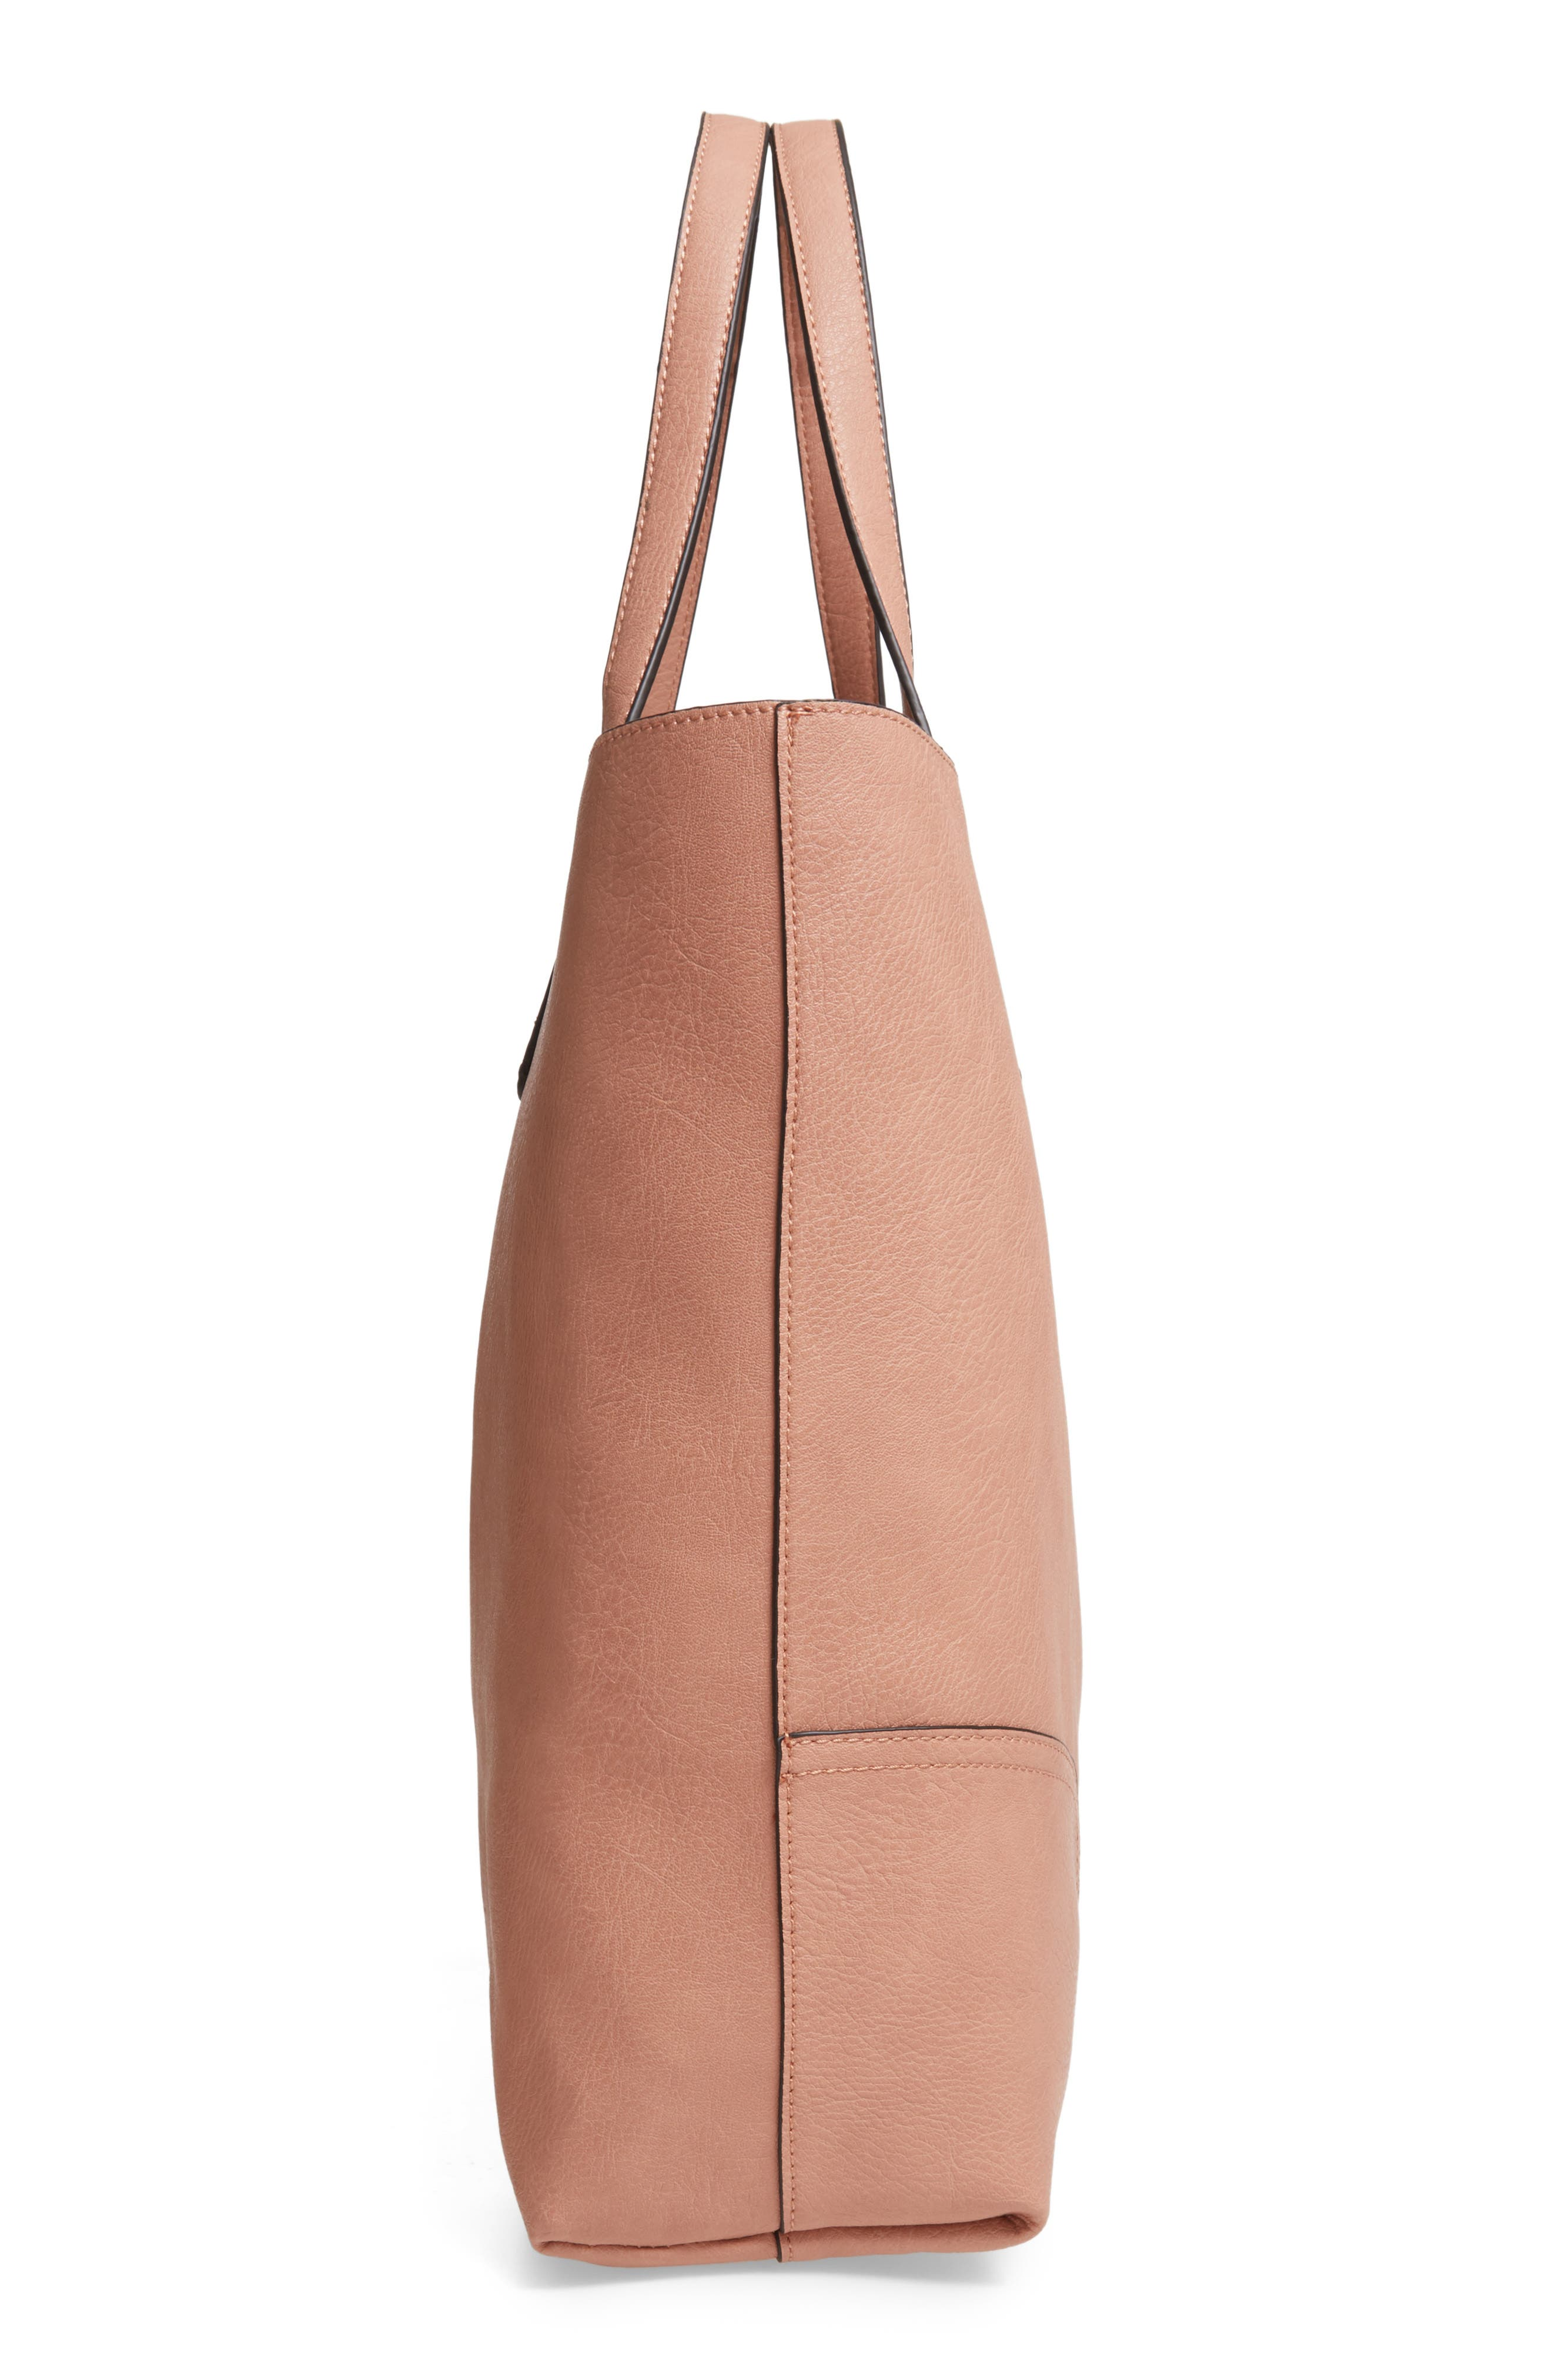 SOLE SOCIETY, Lilyn Faux Leather Tote, Alternate thumbnail 6, color, CANYON